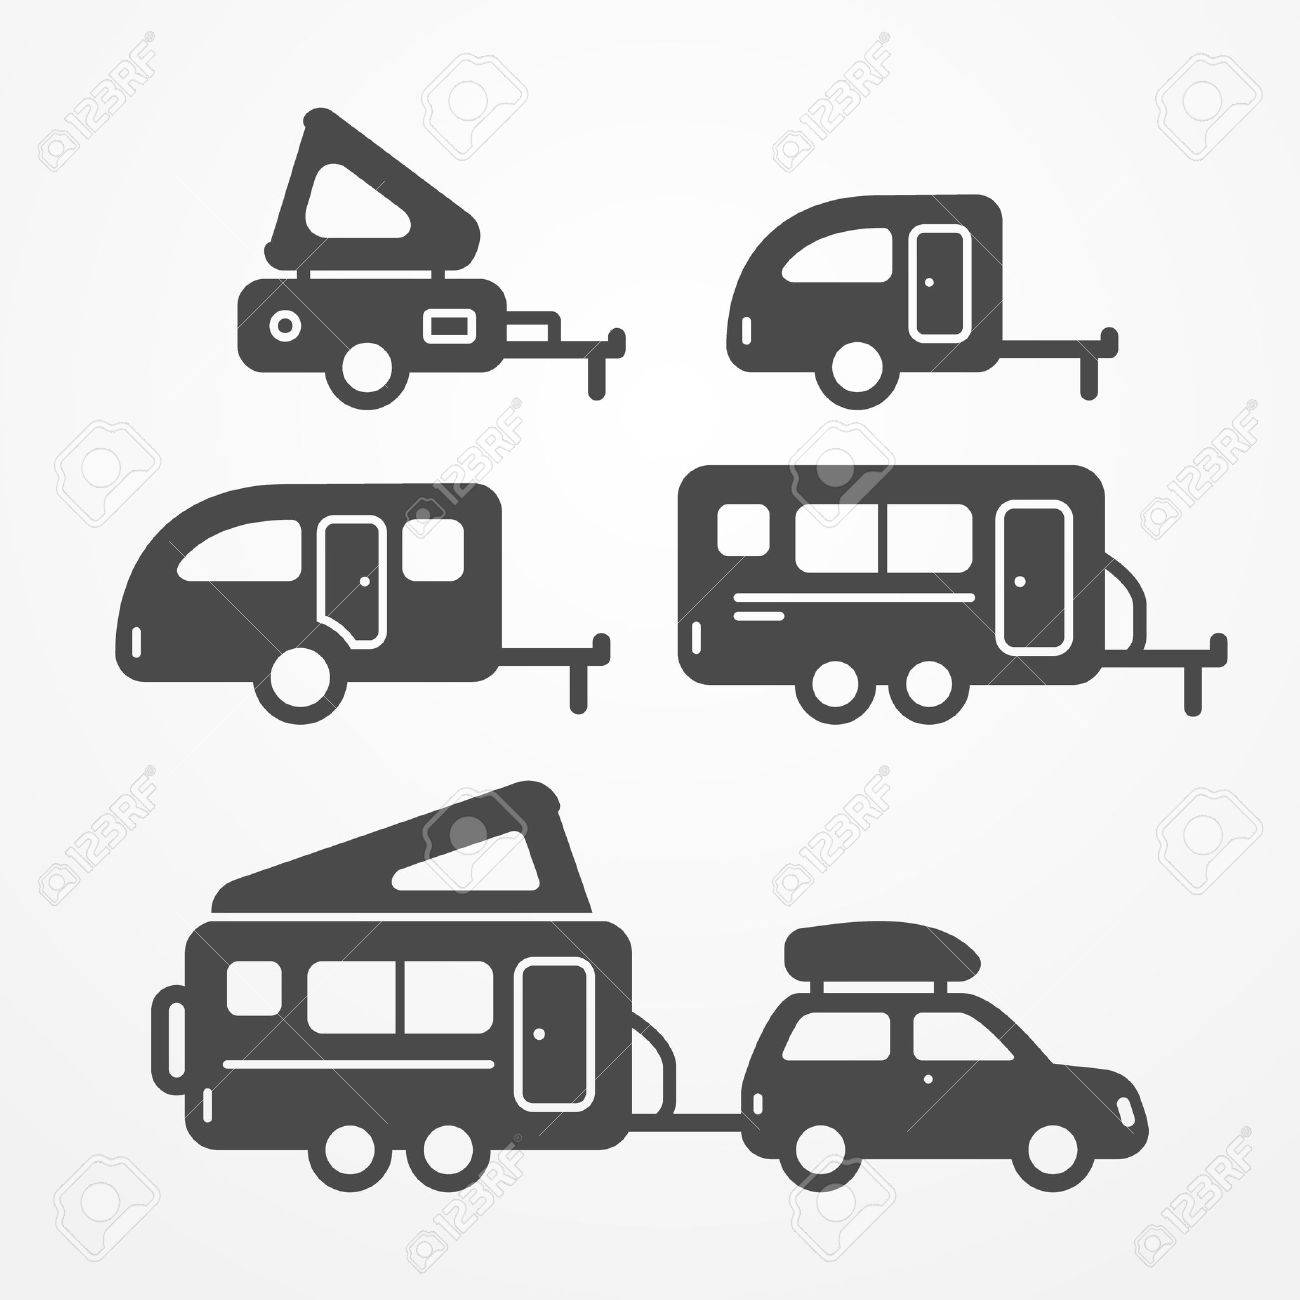 Set Of Camping Trailer Icons Travel Symbols In Silhouette Style Trailers Stock